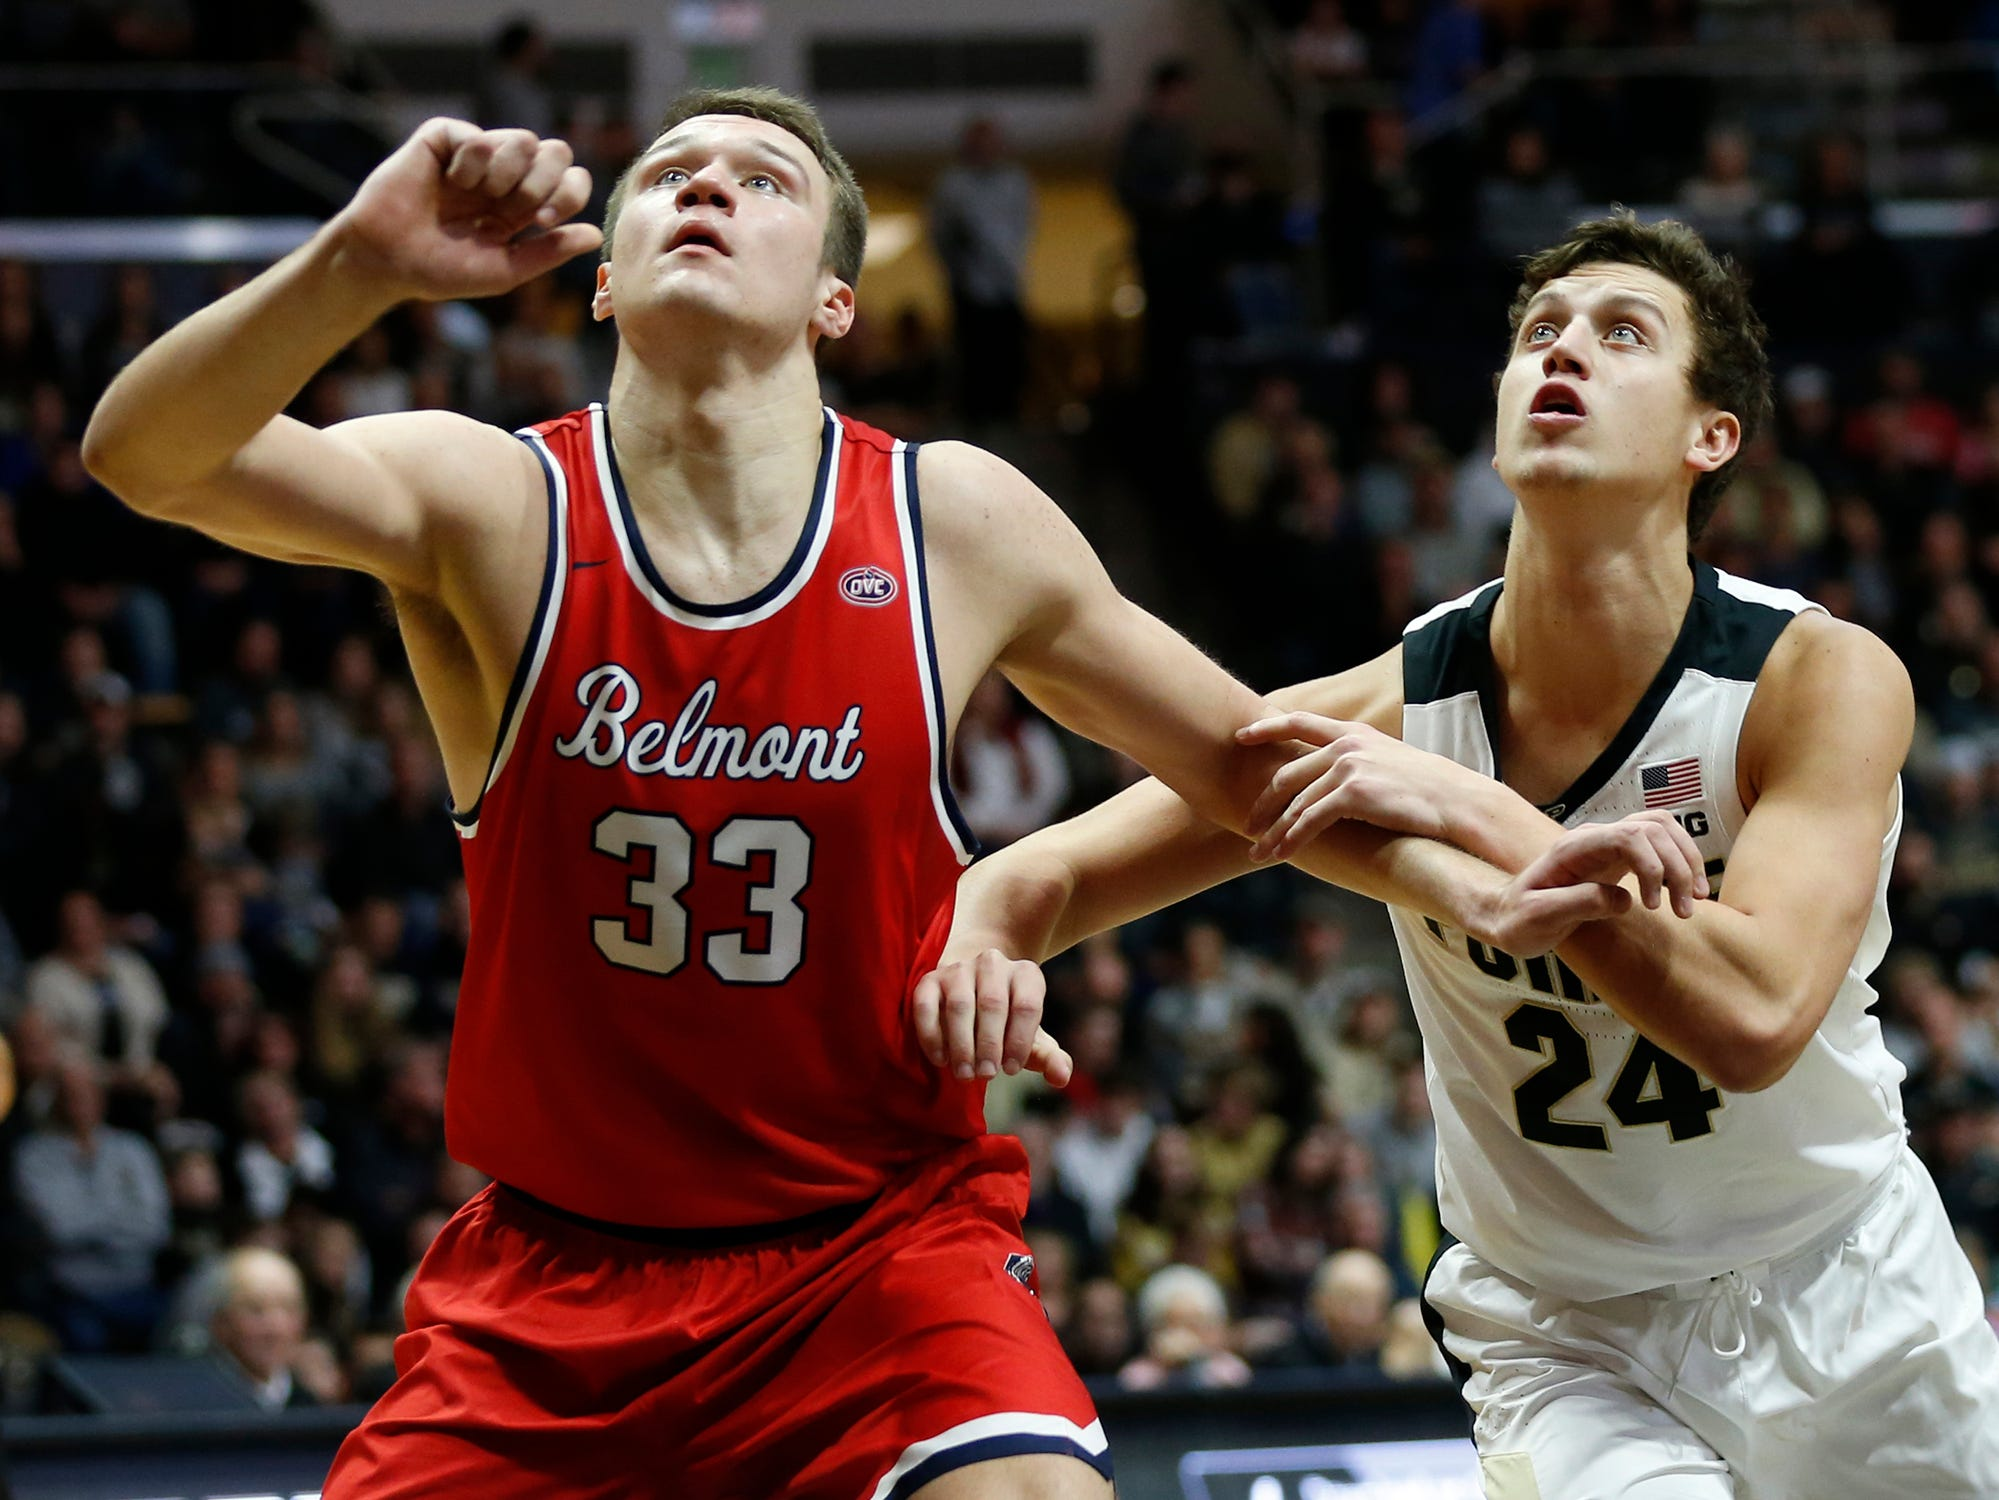 Grady Eifert of Purdue and Nick Muszynski of Belmont jockey for position as the Boilermakers shoot a free throw in the second half Saturday, December 29, 2018, at Mackey Arena. Purdue defeated Belmont 73-62.